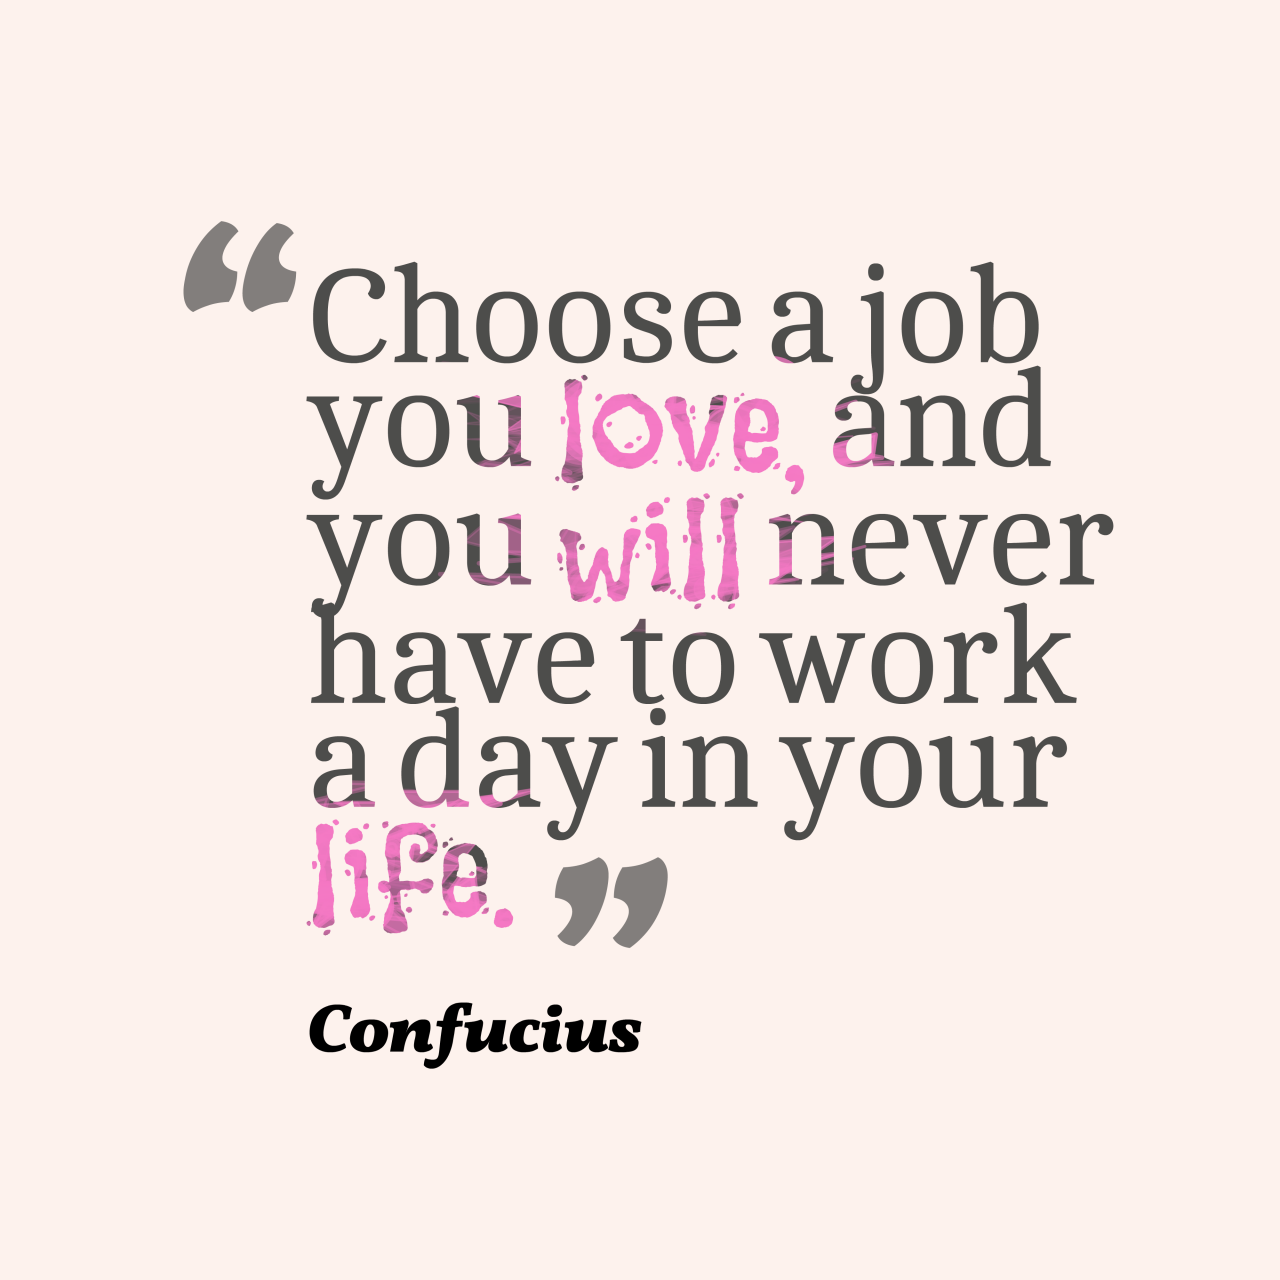 Choose A Job You Love And You Will Never Have To Work A Day In Your Life Confucius